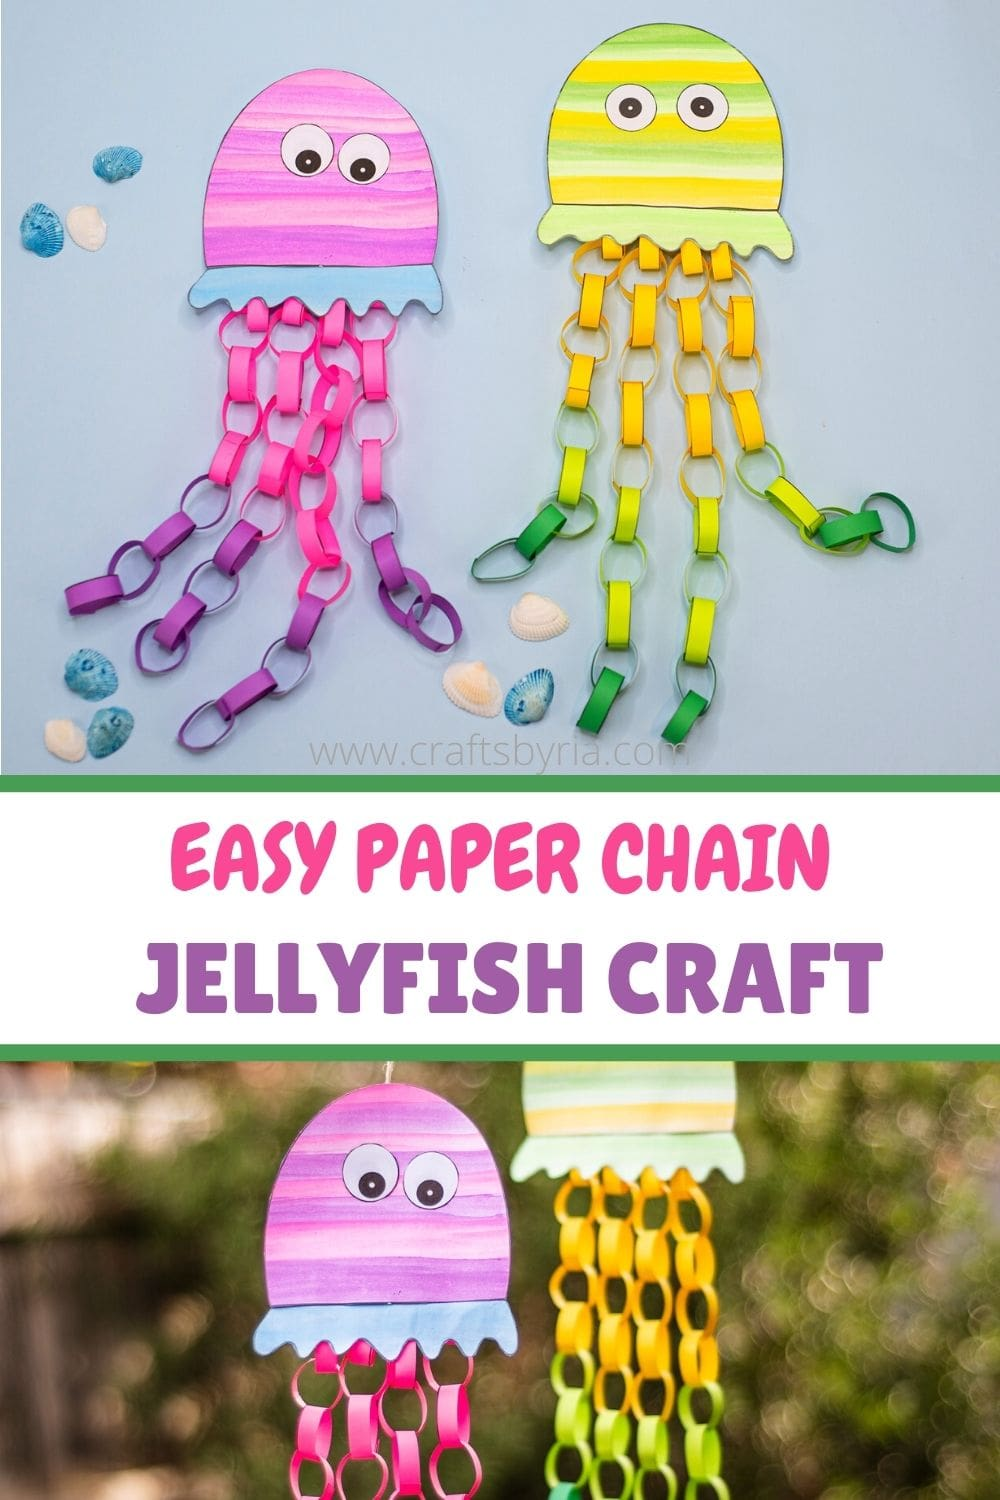 Paper jellyfish craft-image for pinterest